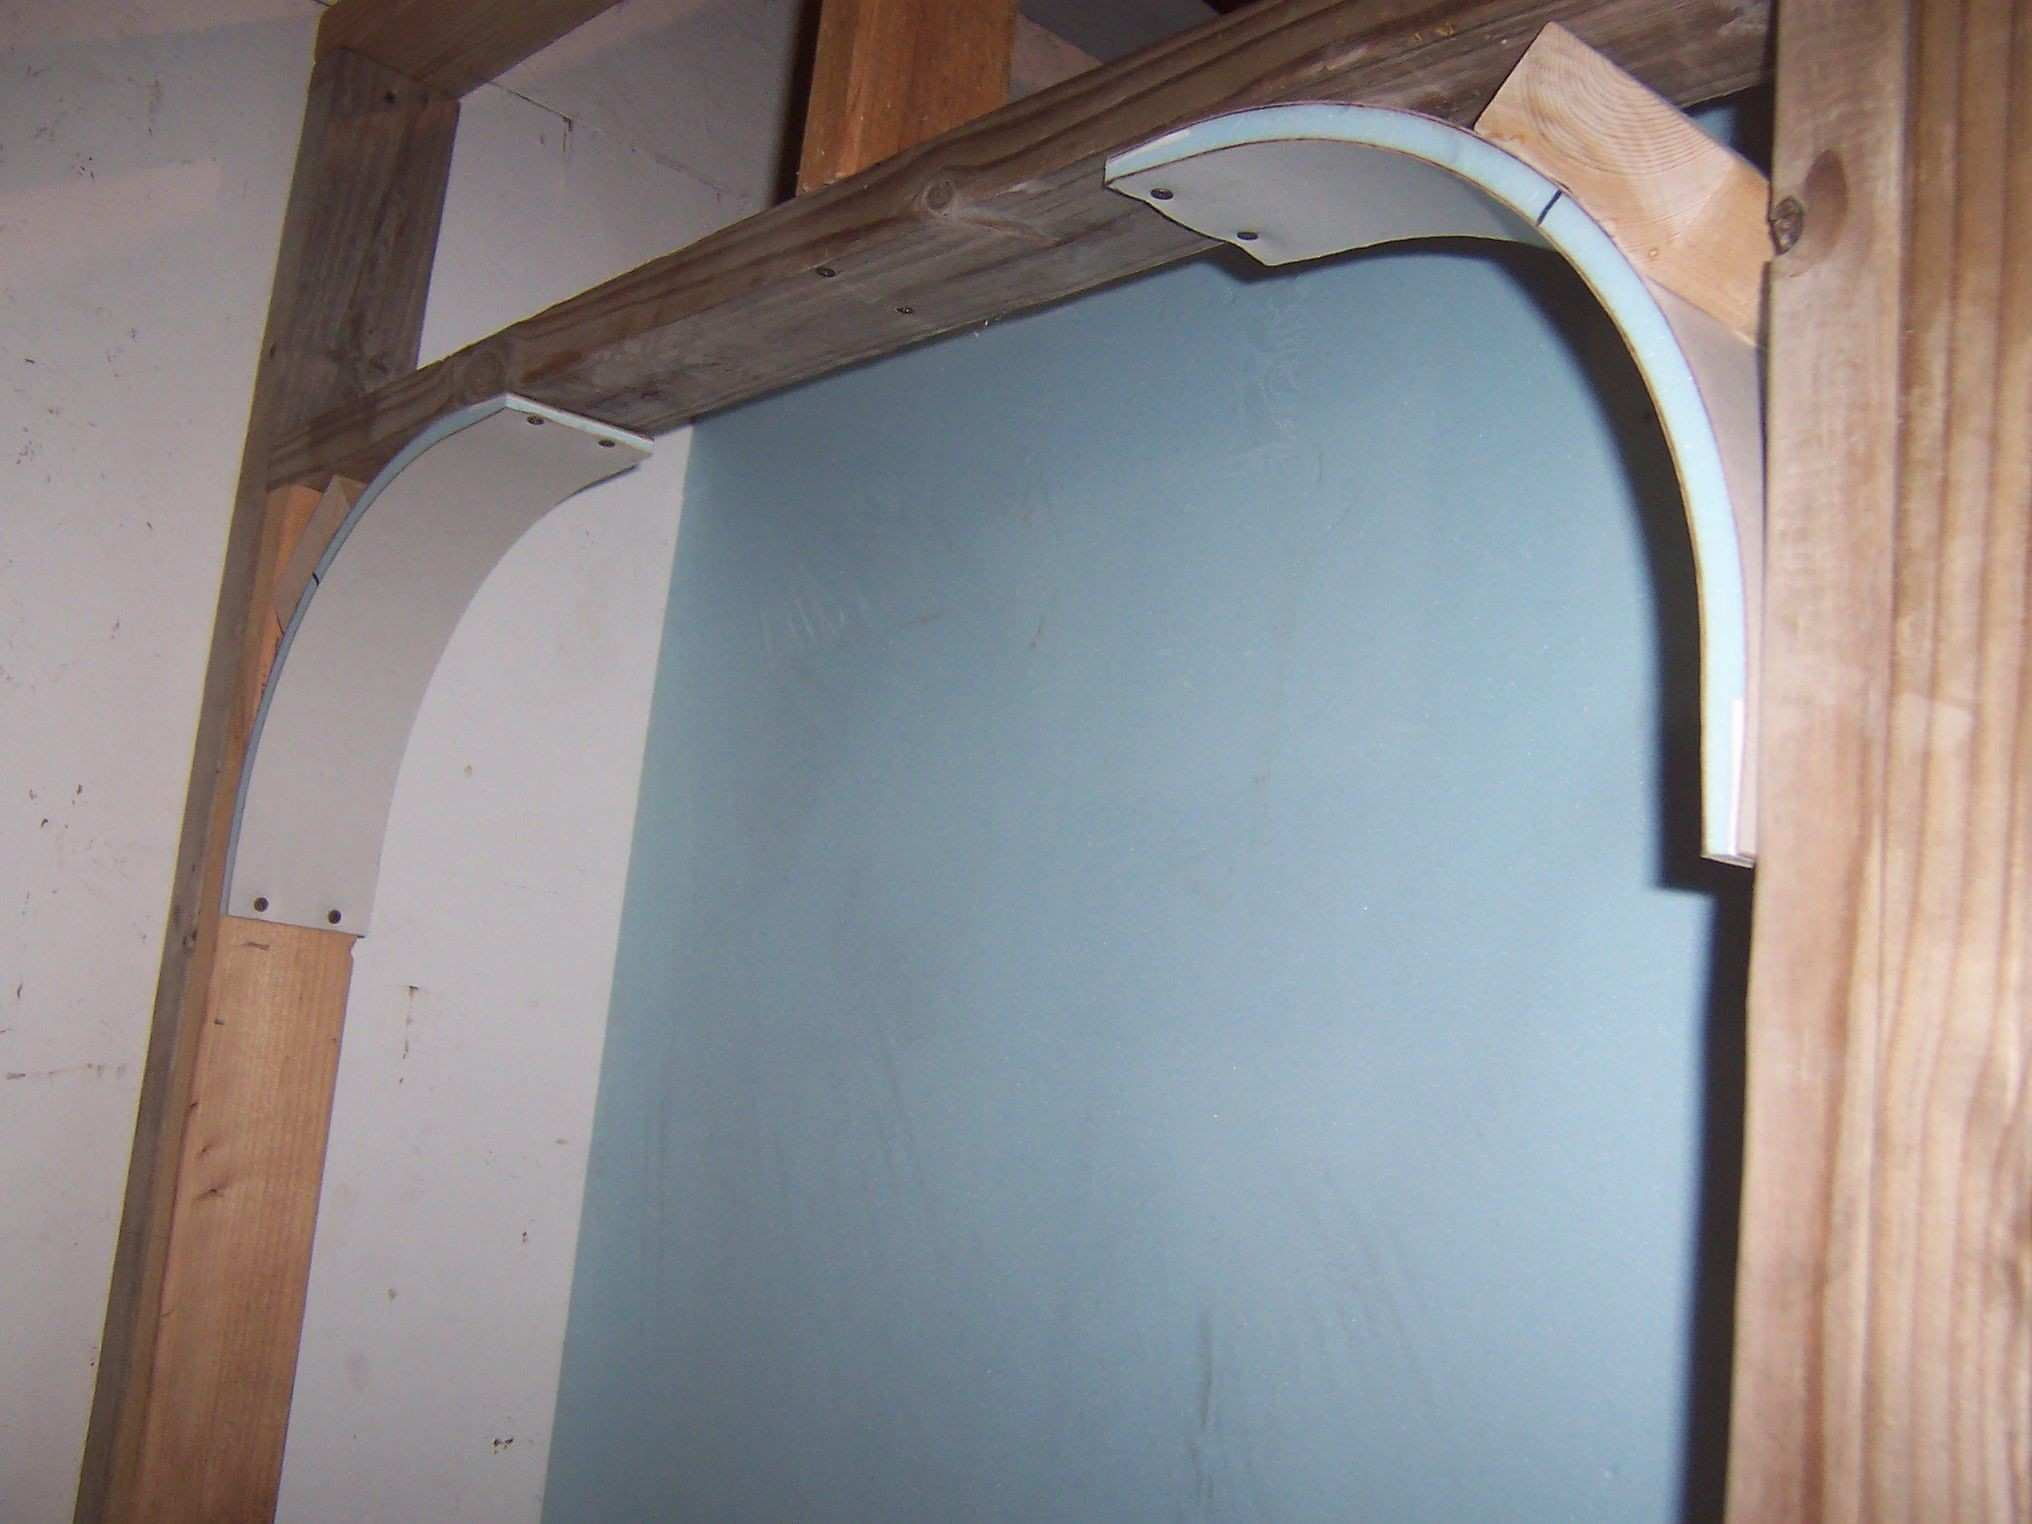 Pre made drywall arches Simplest possible way to create arches No